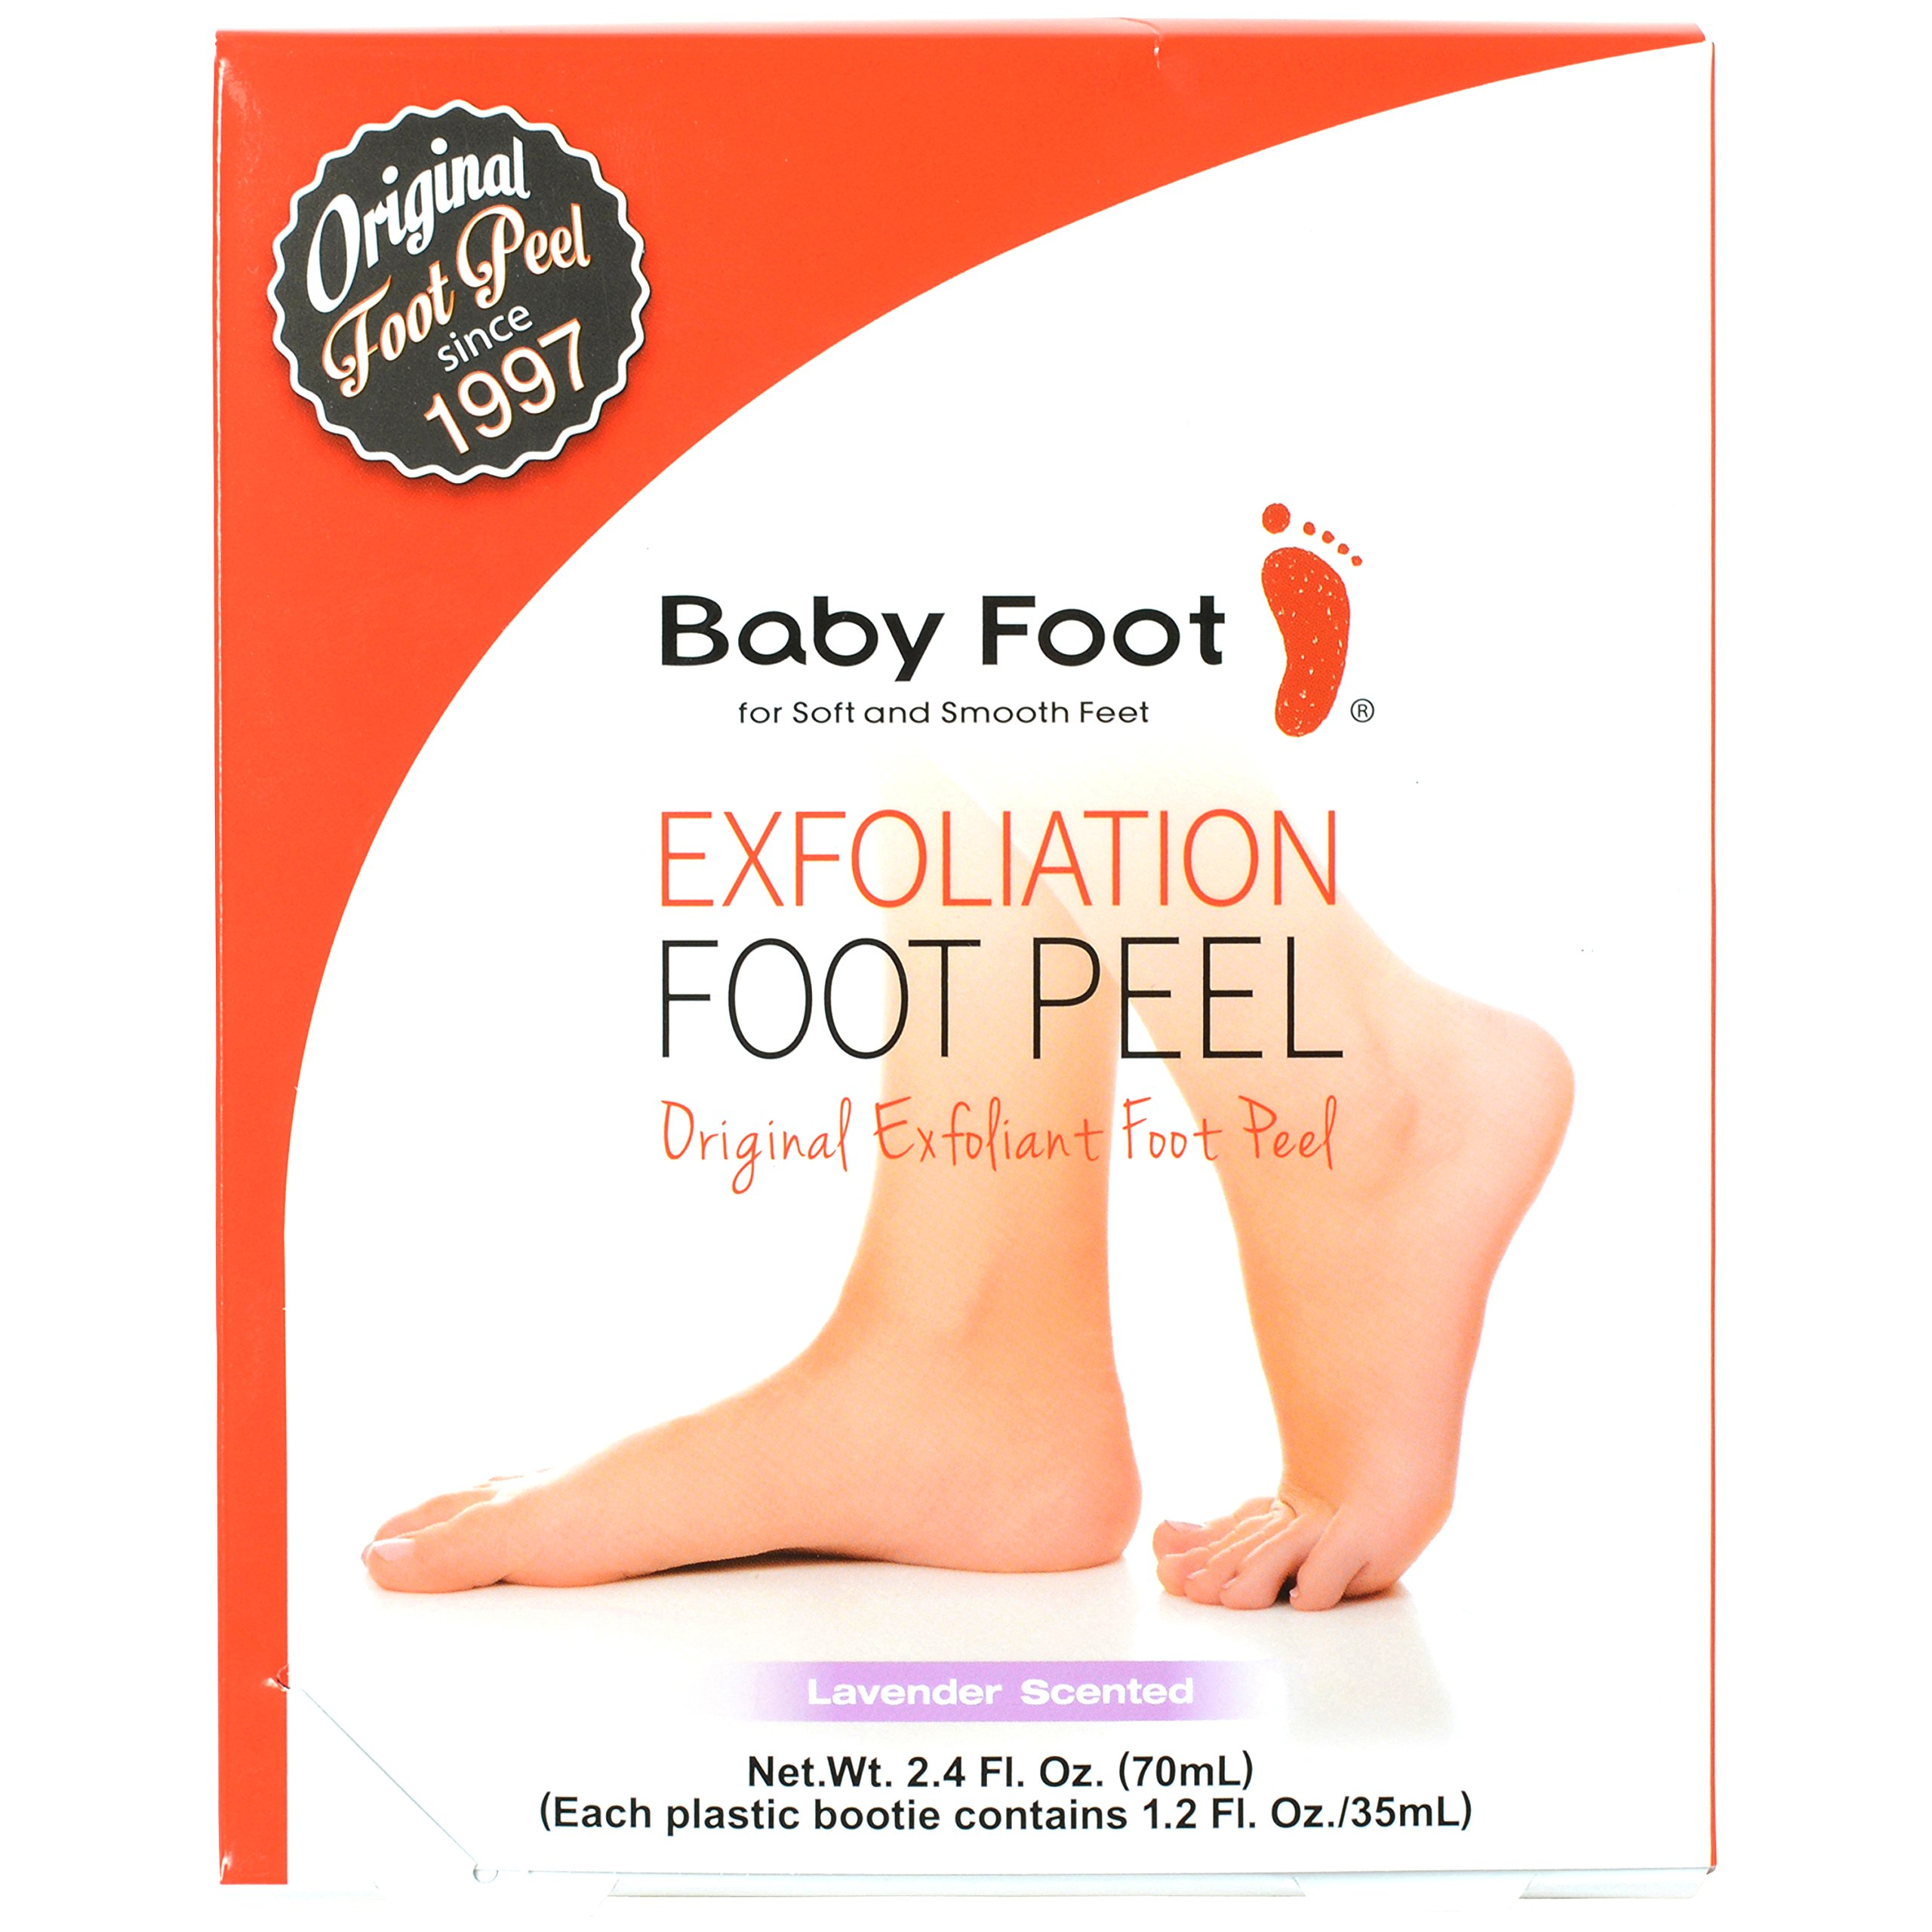 Baby Foot Exfoliant Foot Peel, Lavender Scented, 2.4 Fl. Oz.